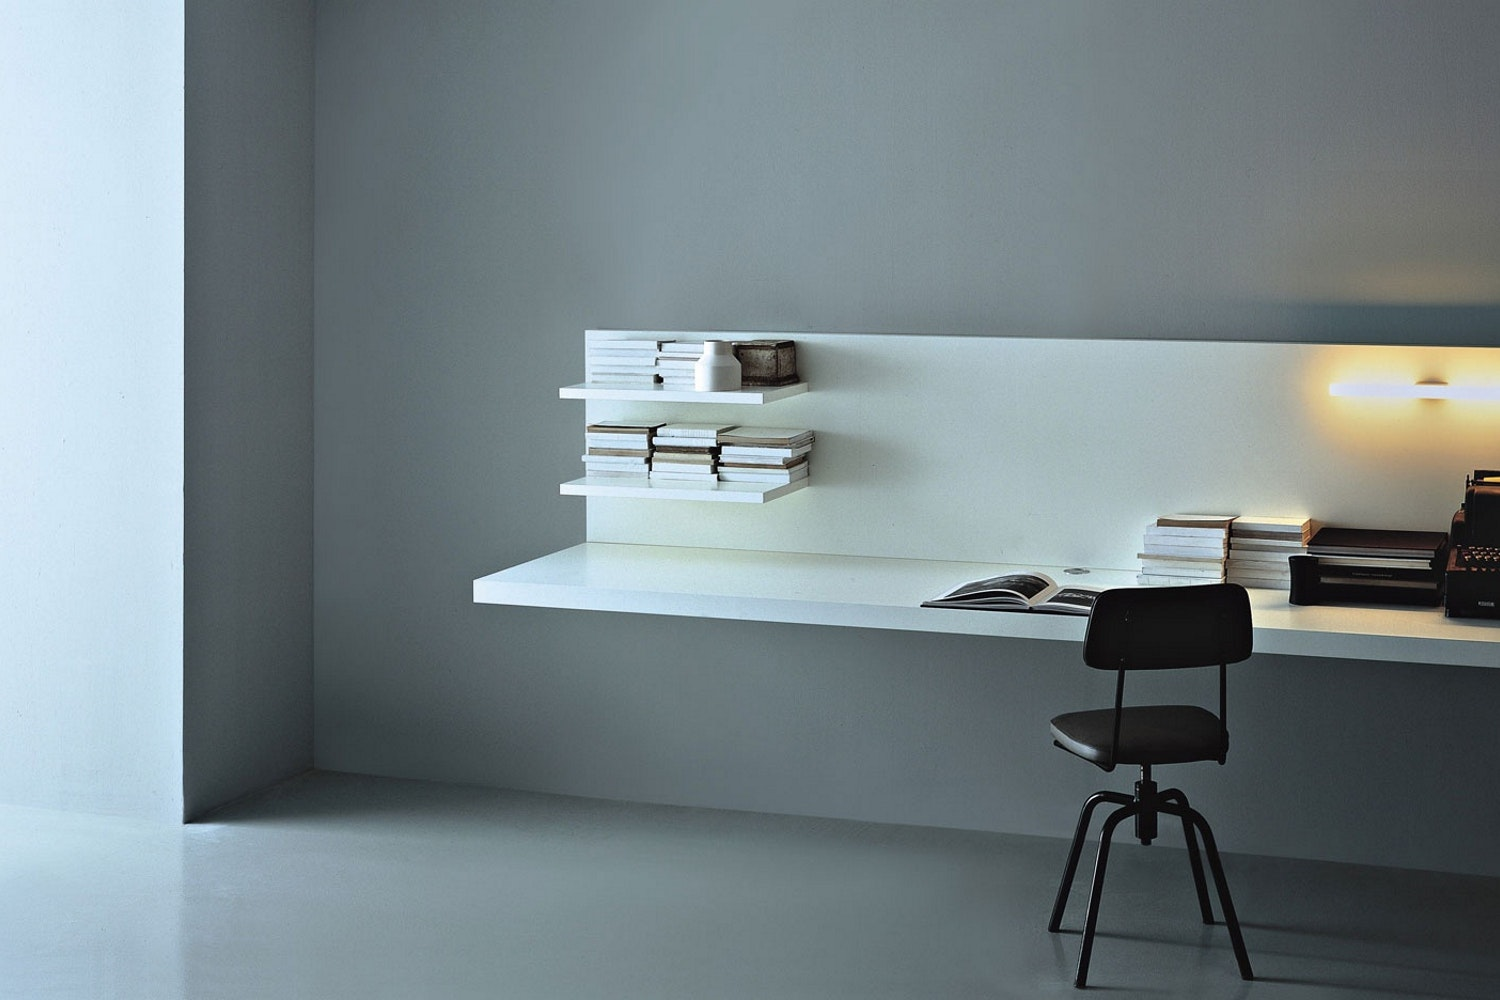 Web Wall Mounted Storage by Piero Lissoni for Porro